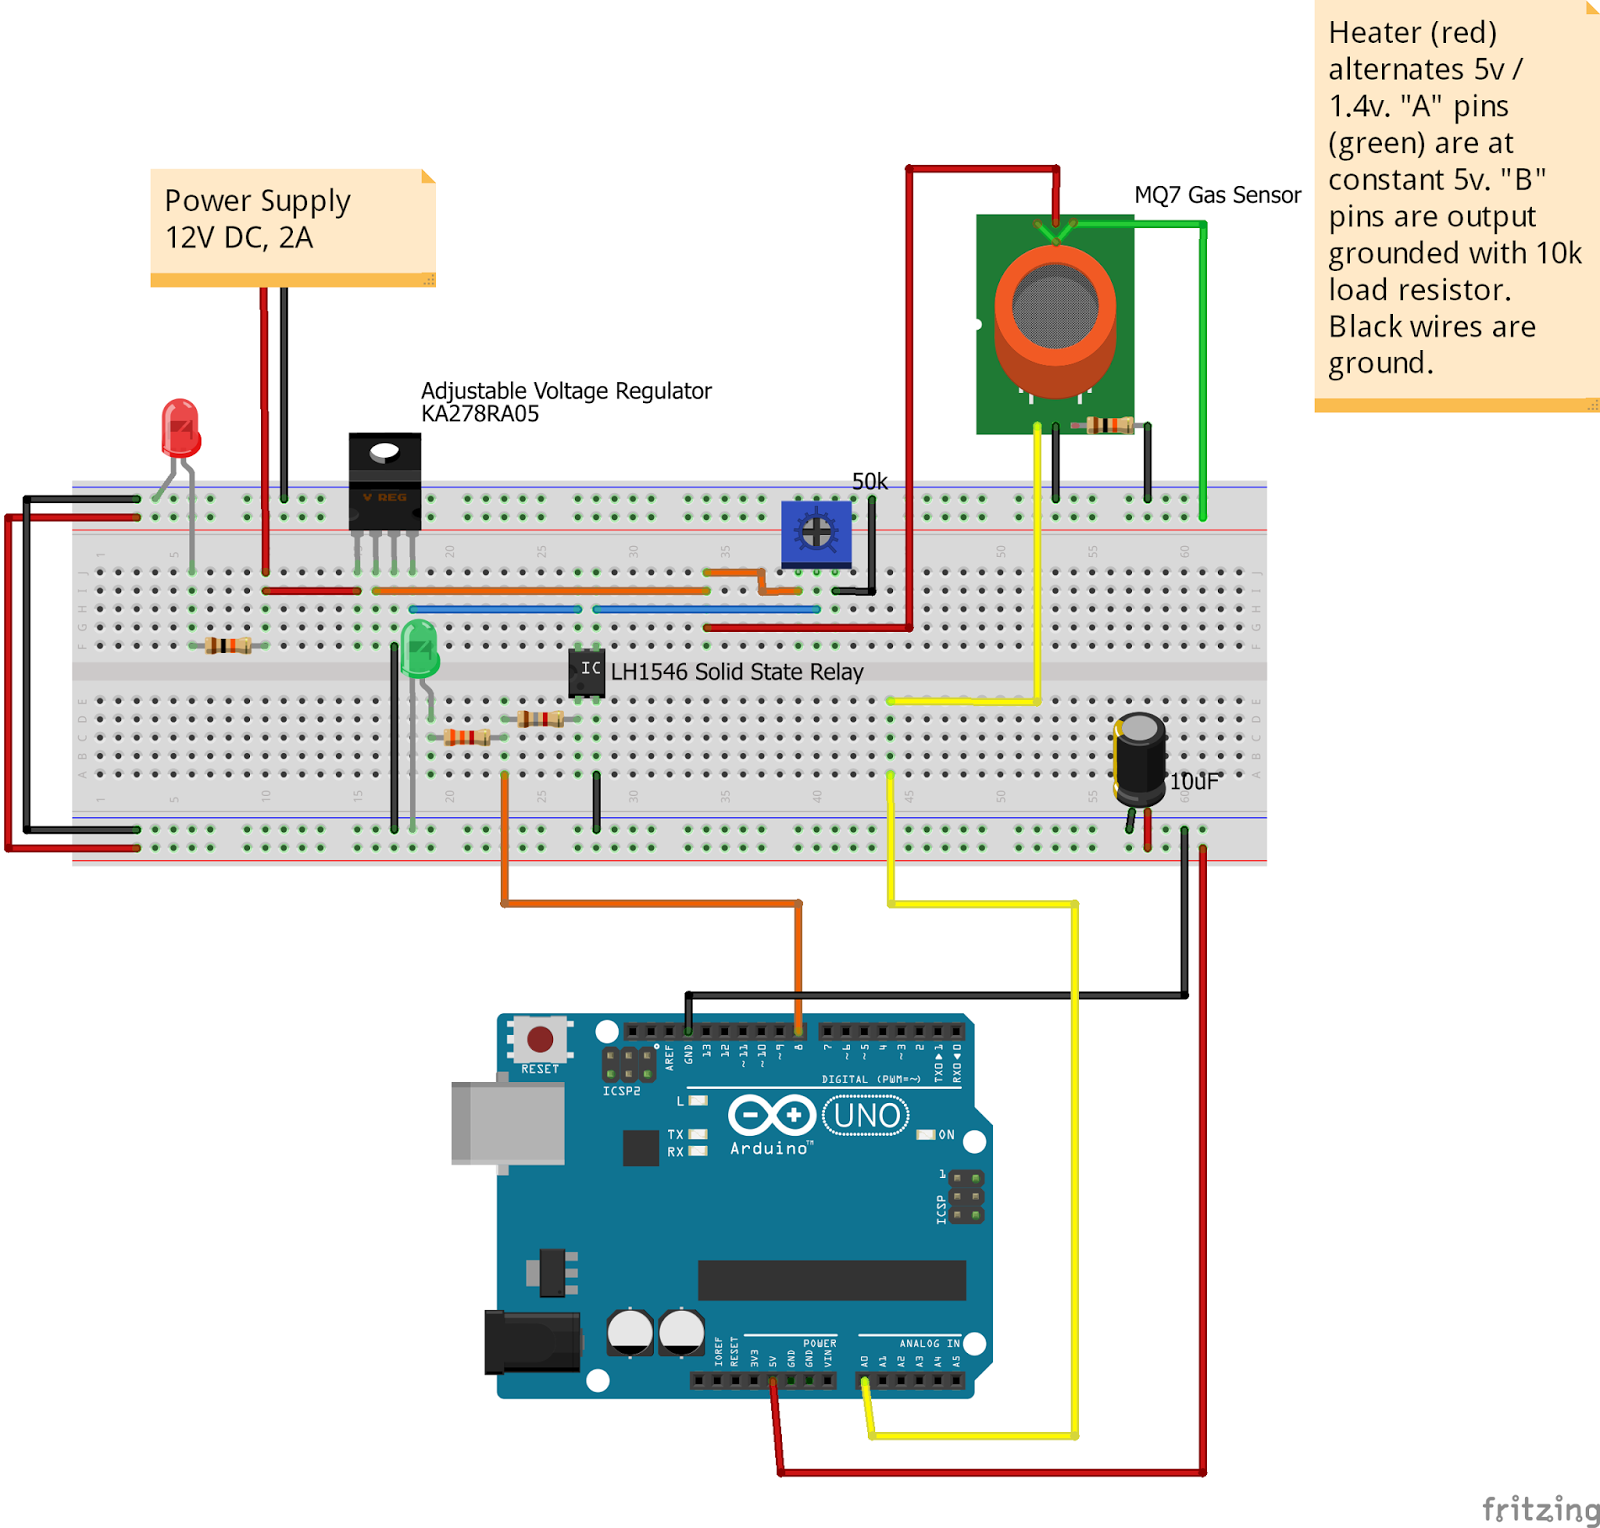 MQ7+Gas+Sensor_bb internet of things co (carbon monoxide) gas sensor using the  at bayanpartner.co